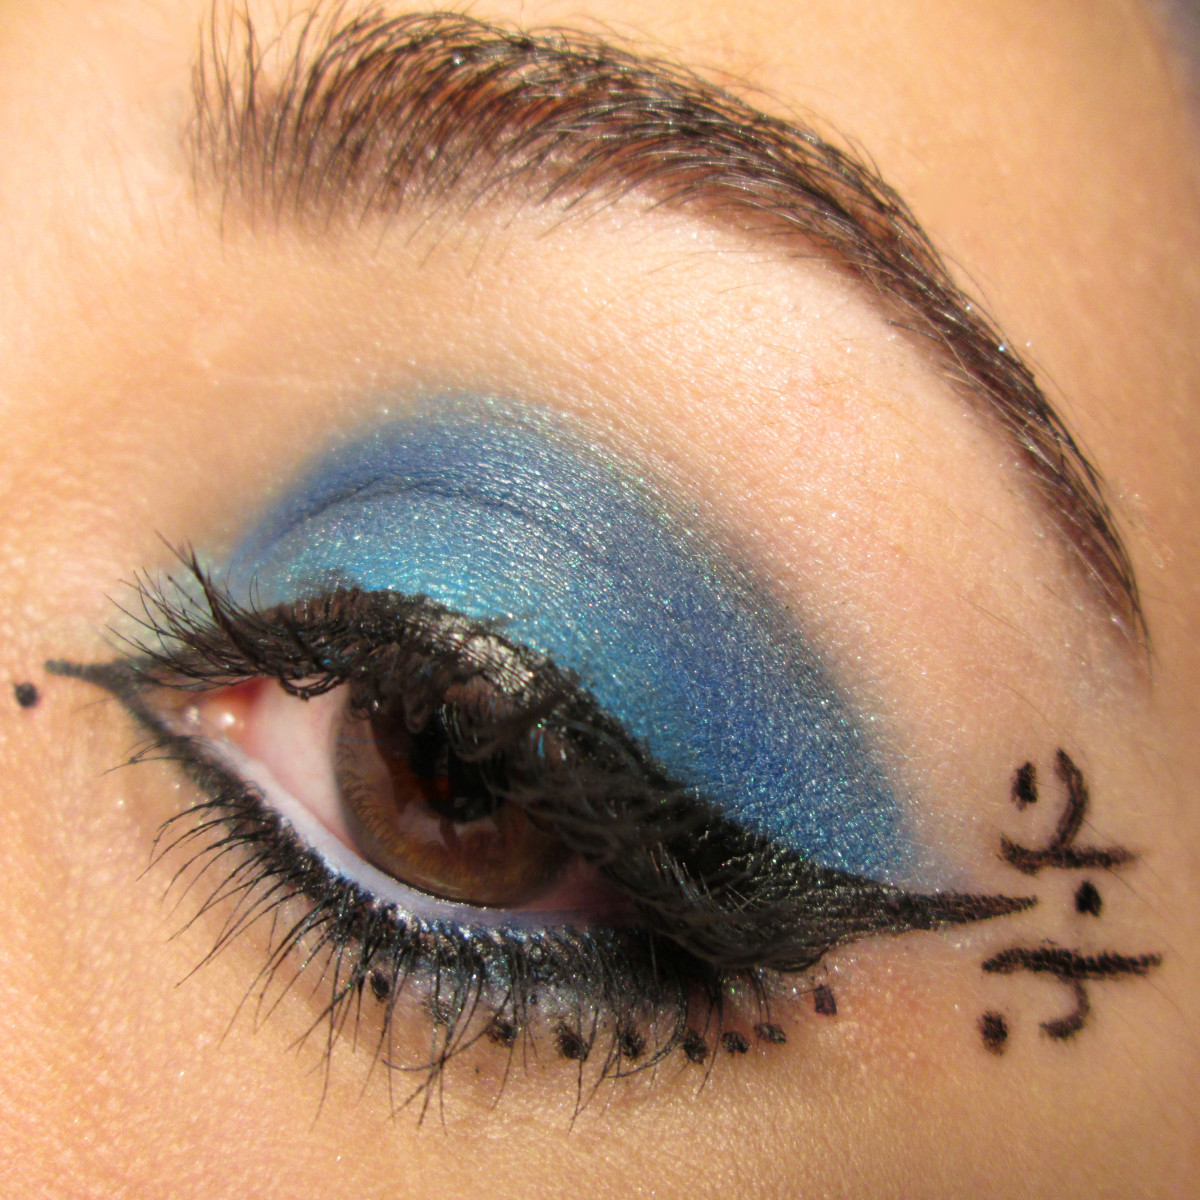 Liquid eyeliner is best when drawing tiny details around your makeup.